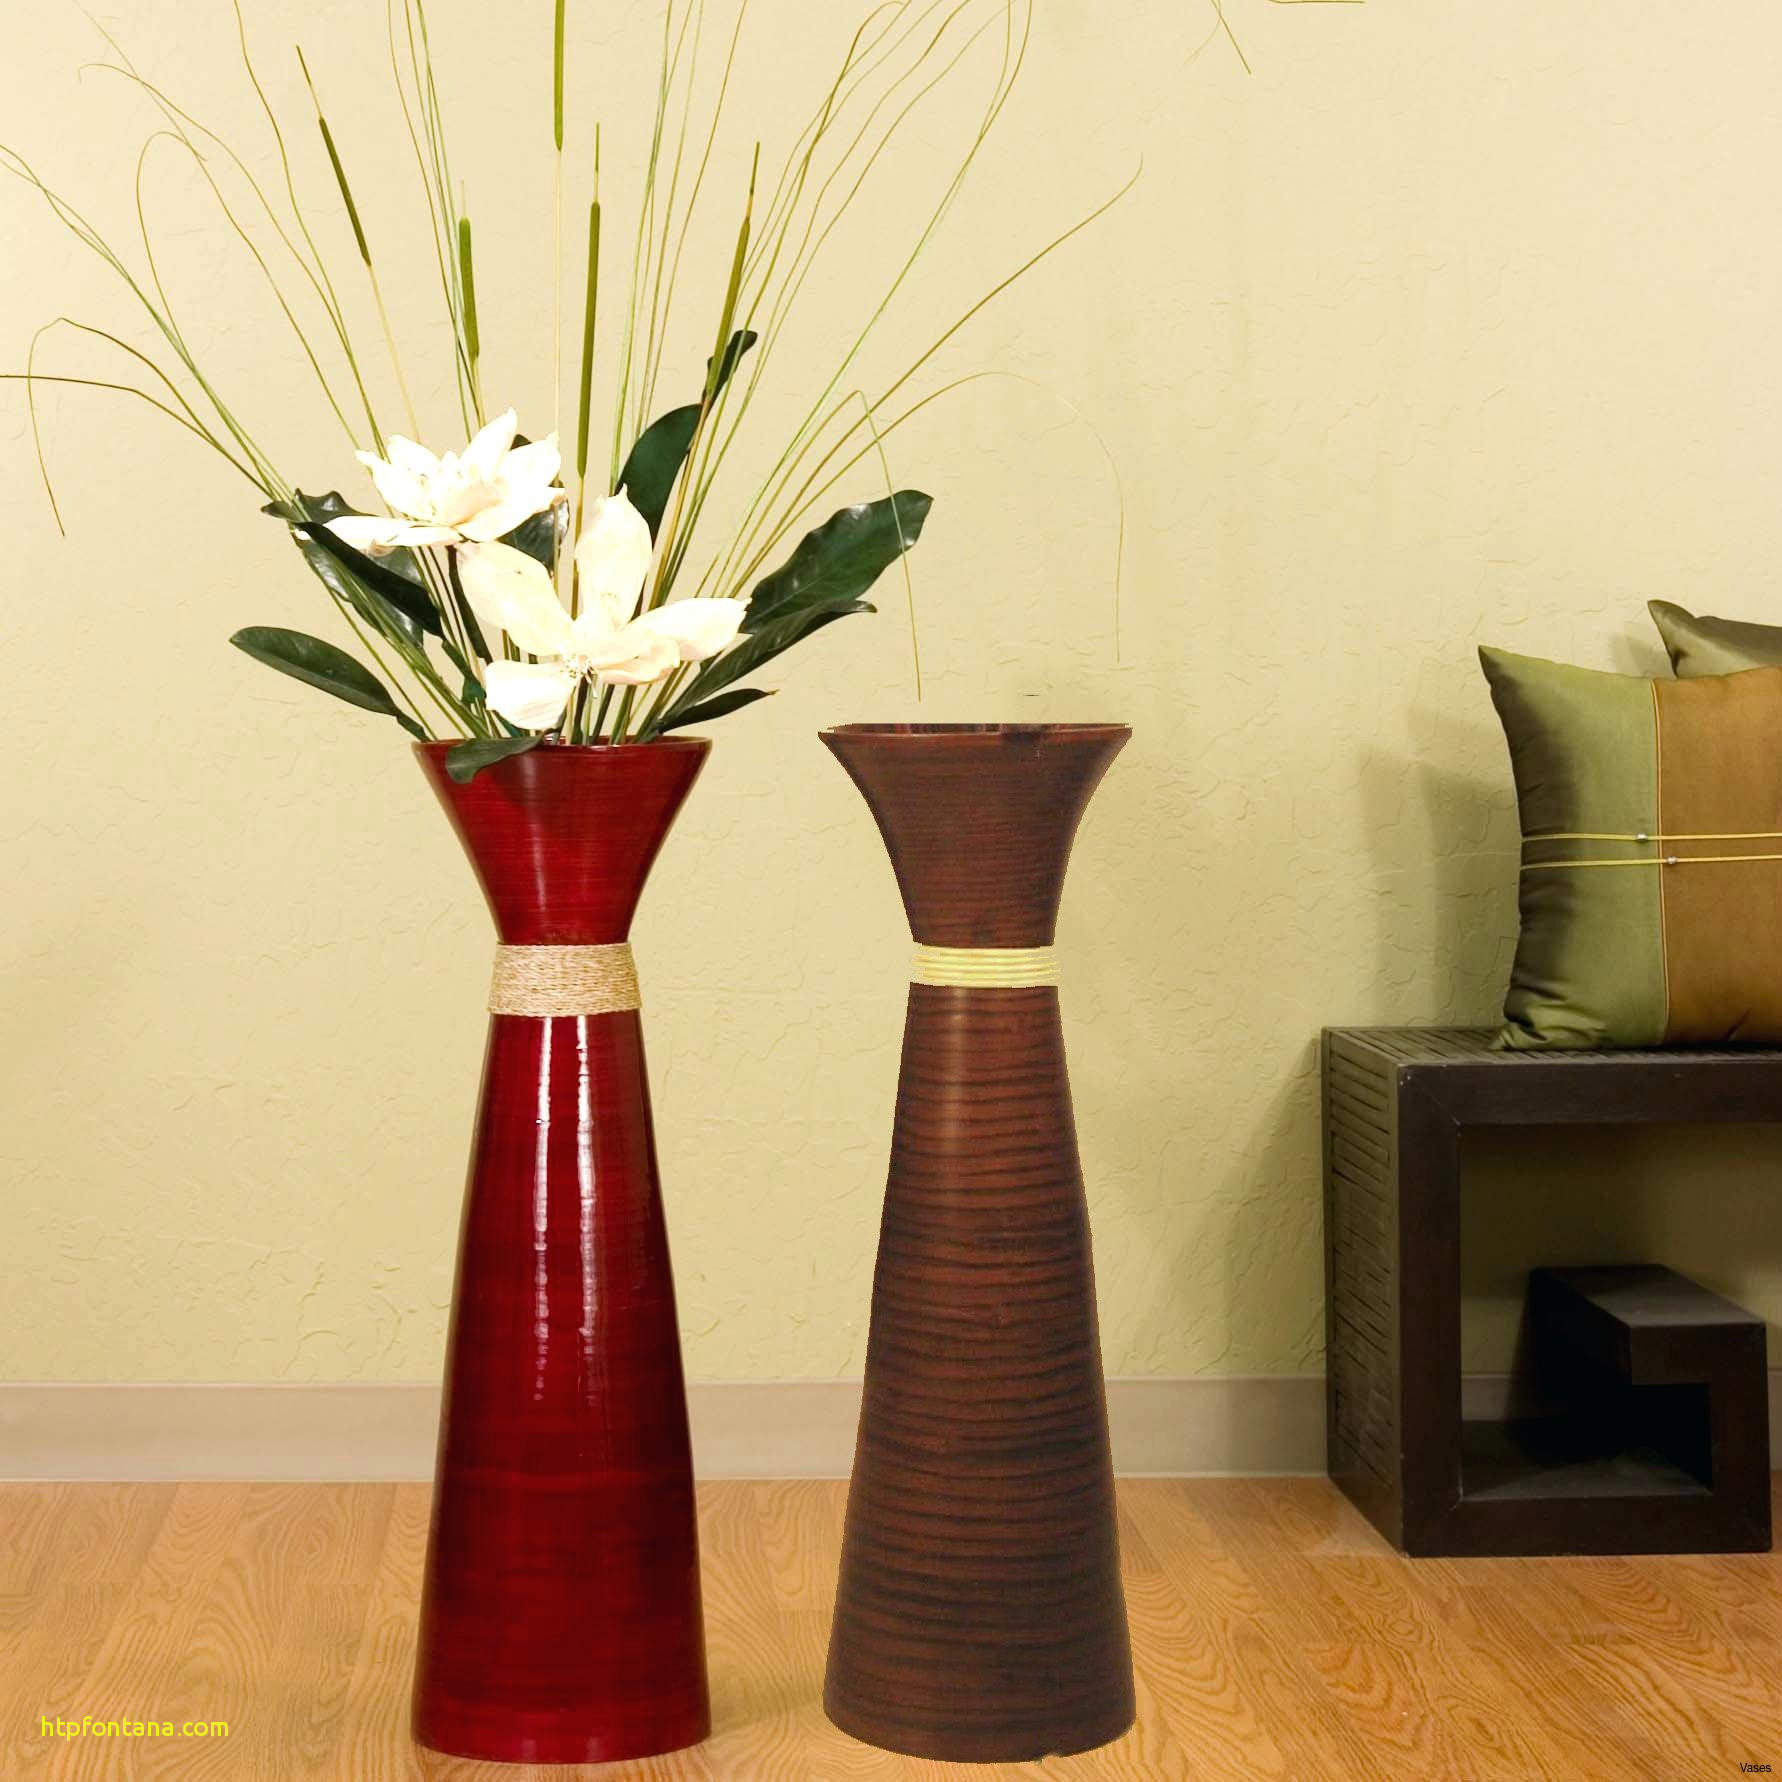 Patina Floor Vase Of Floor Vase Fresh Colorful Floor Vases Elegant How to Draw A Vase Throughout Floor Vase Fresh Colorful Floor Vases Elegant How to Draw A Vase Step 2h Vases by